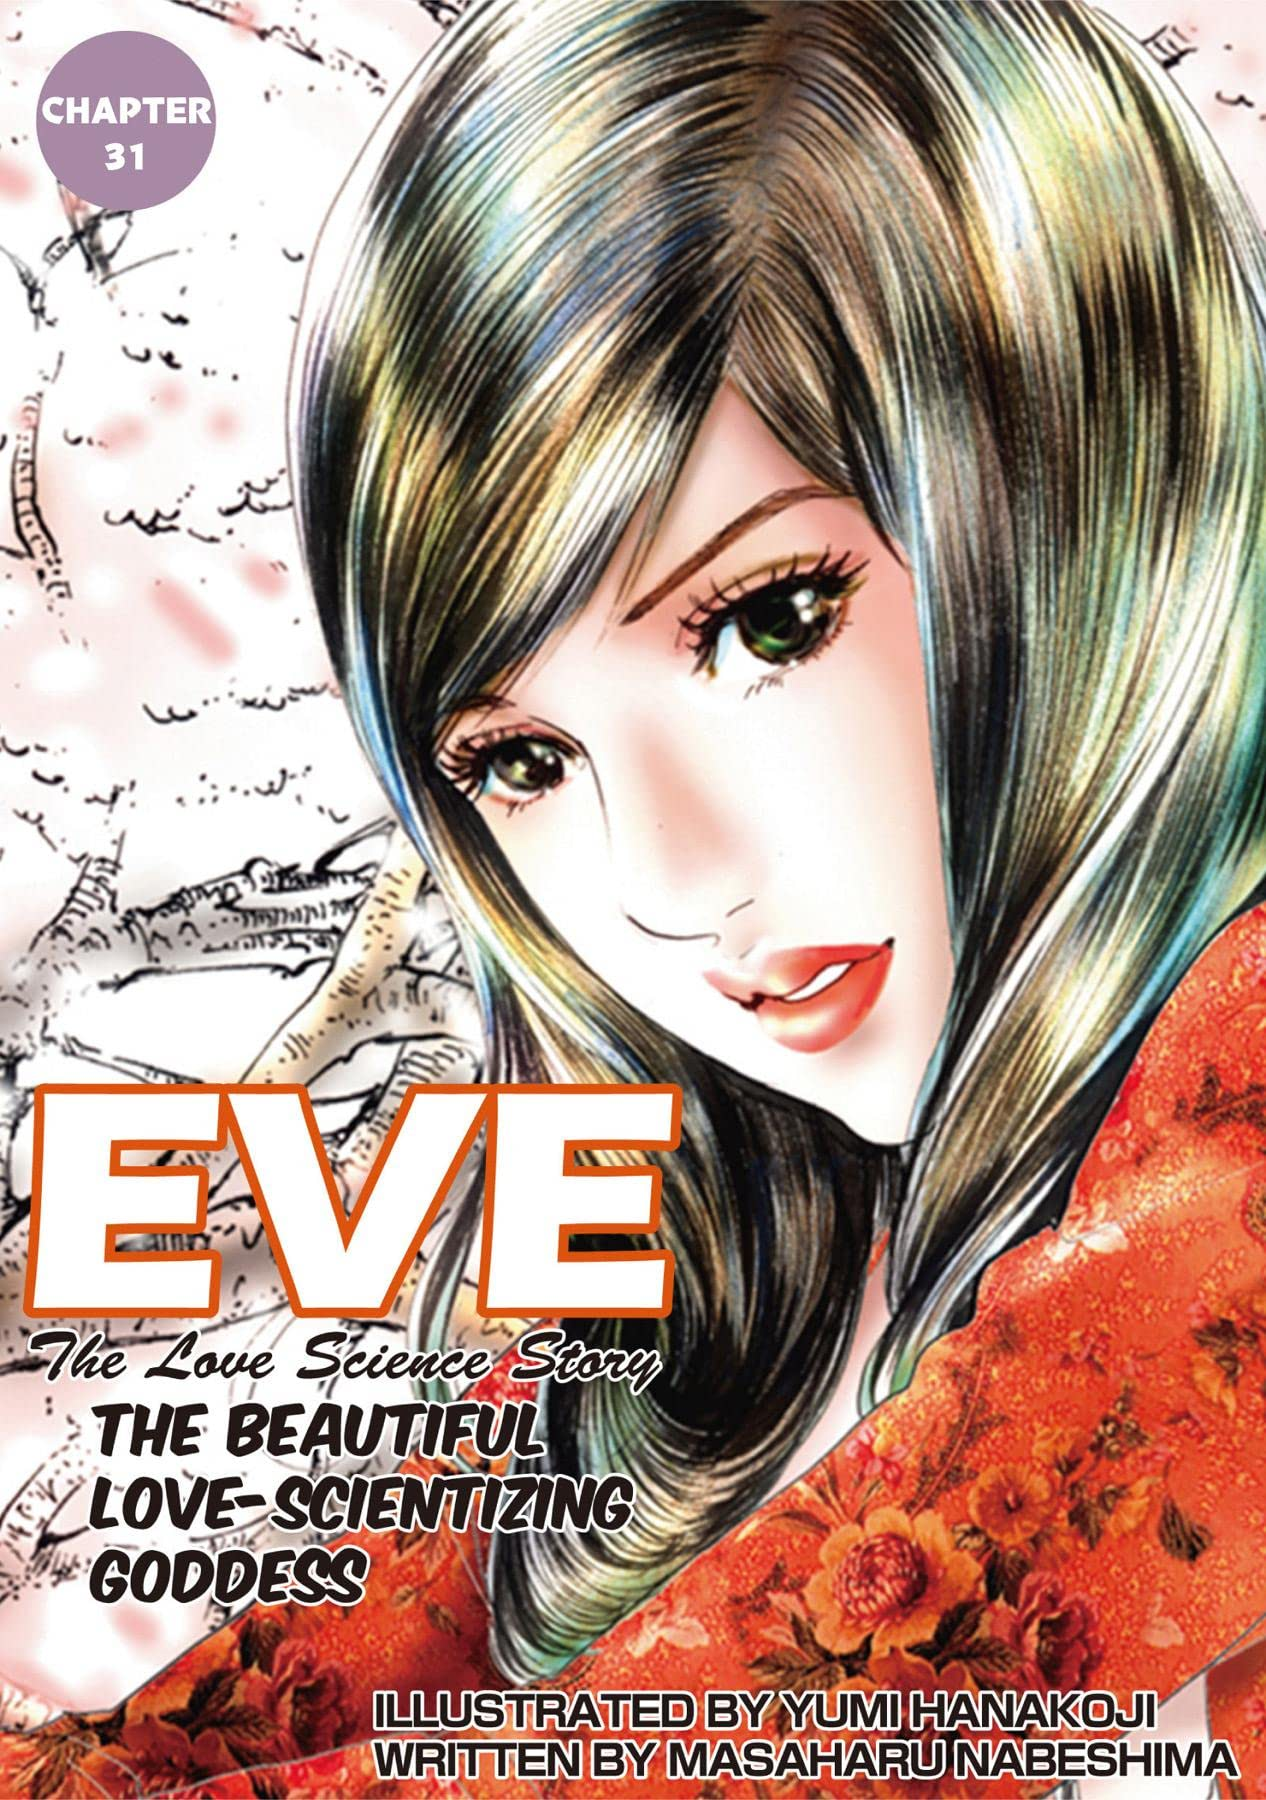 EVE:THE BEAUTIFUL LOVE-SCIENTIZING GODDESS #31